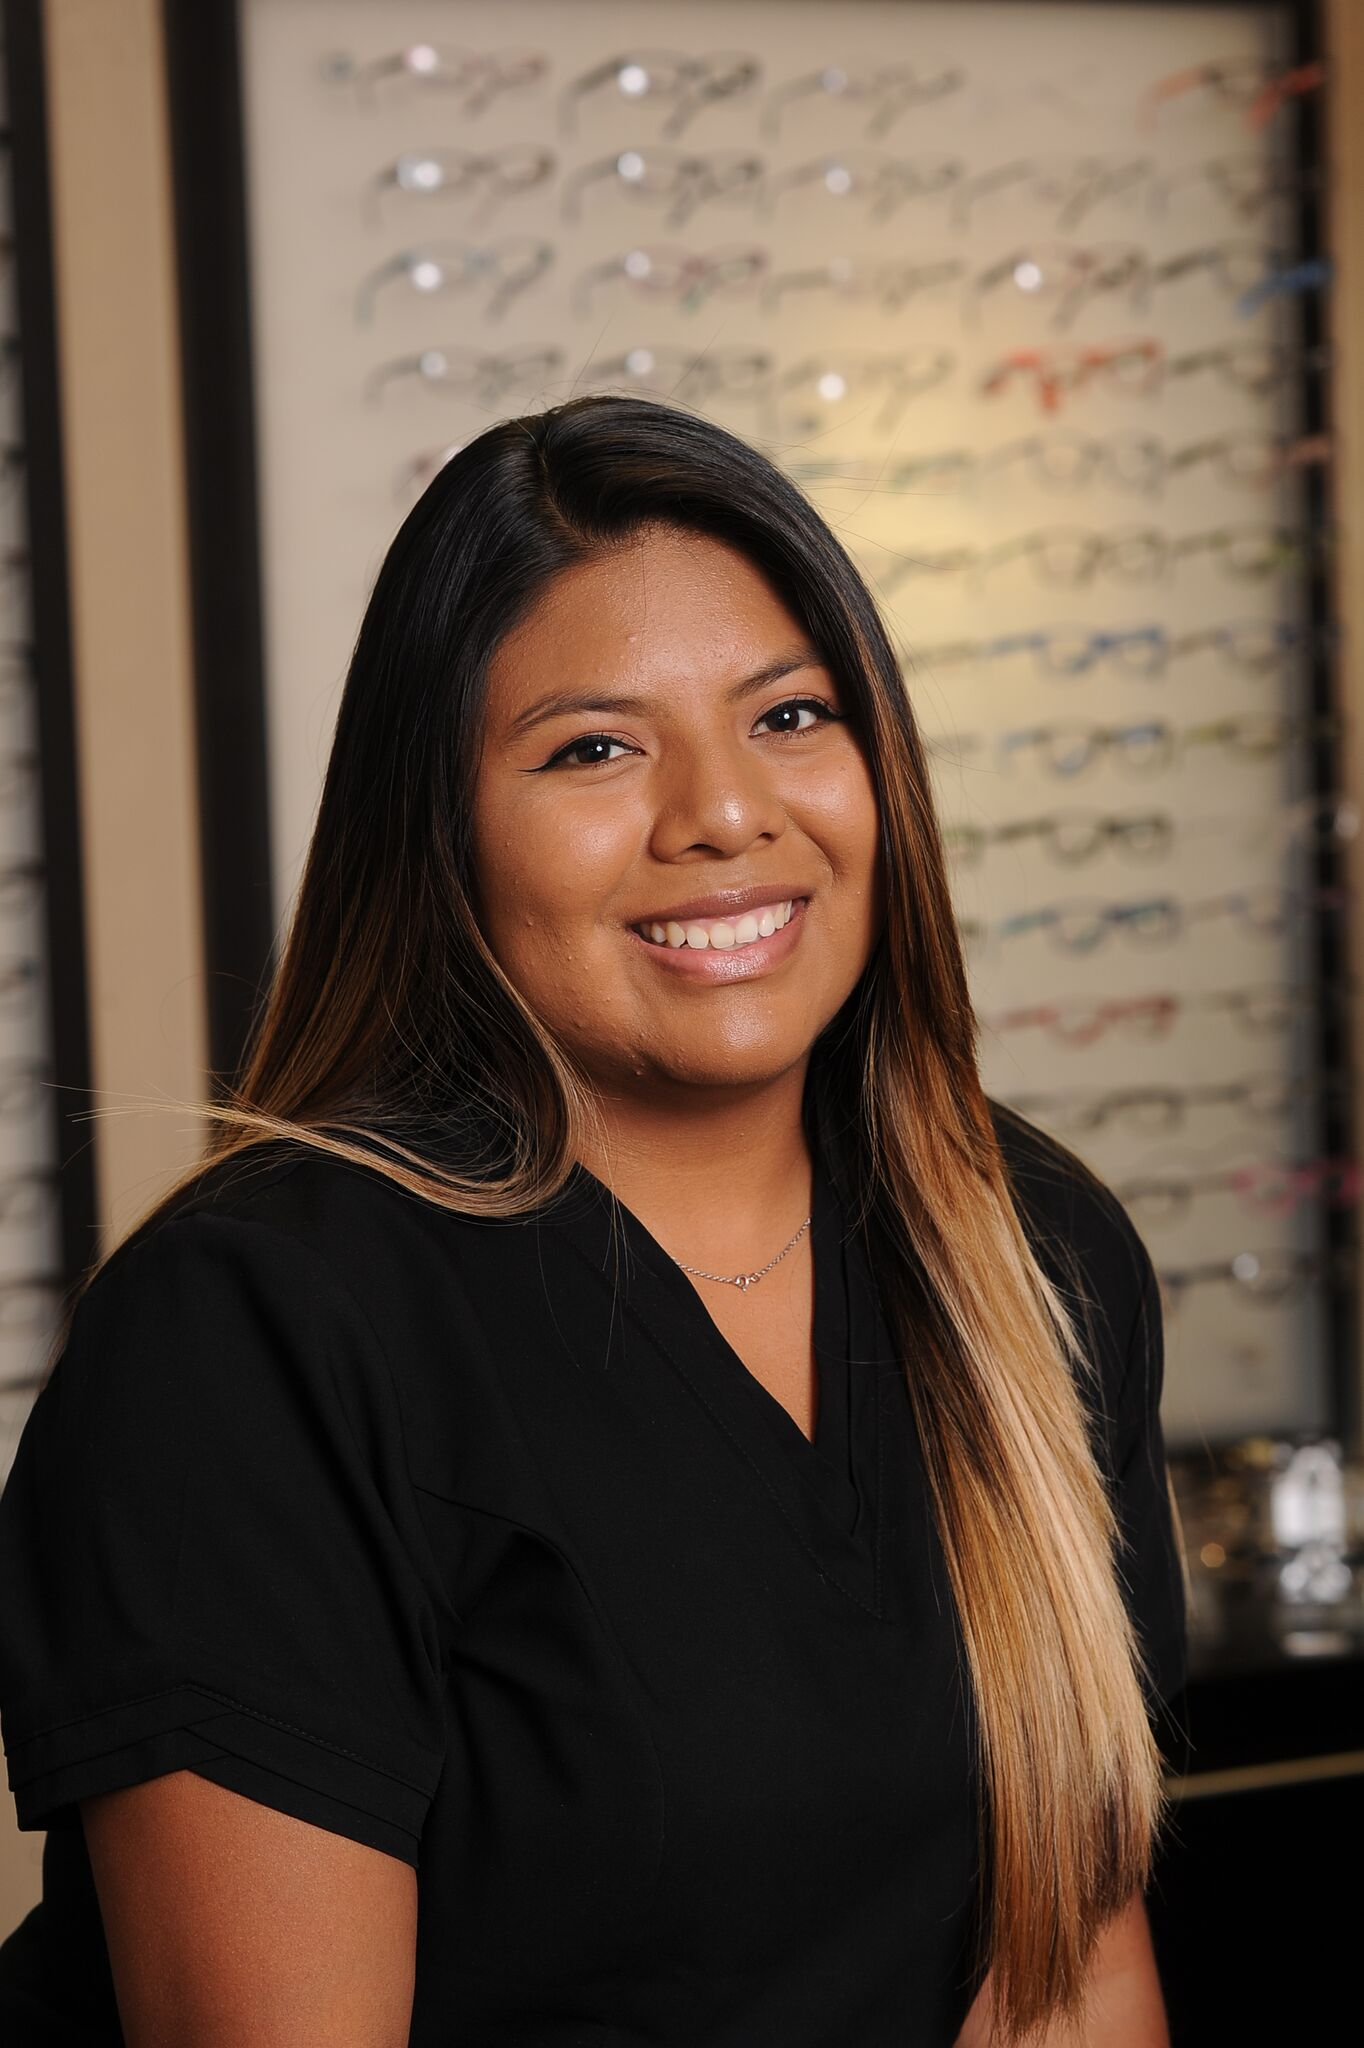 Hello, my name is Ayleen and I will take you through the pre-testing room prior to your eye exam with Dr. Smith.  I am currently enrolled in college and aspire to become a nurse. Dr. Smith\'s office has allowed me the great opportunity to grow and learn new things everyday I am there. I have a passion for helping patients truly understand the test procedures and results before the doctor conducts the exam.  I look forward to meeting you during your next visit!